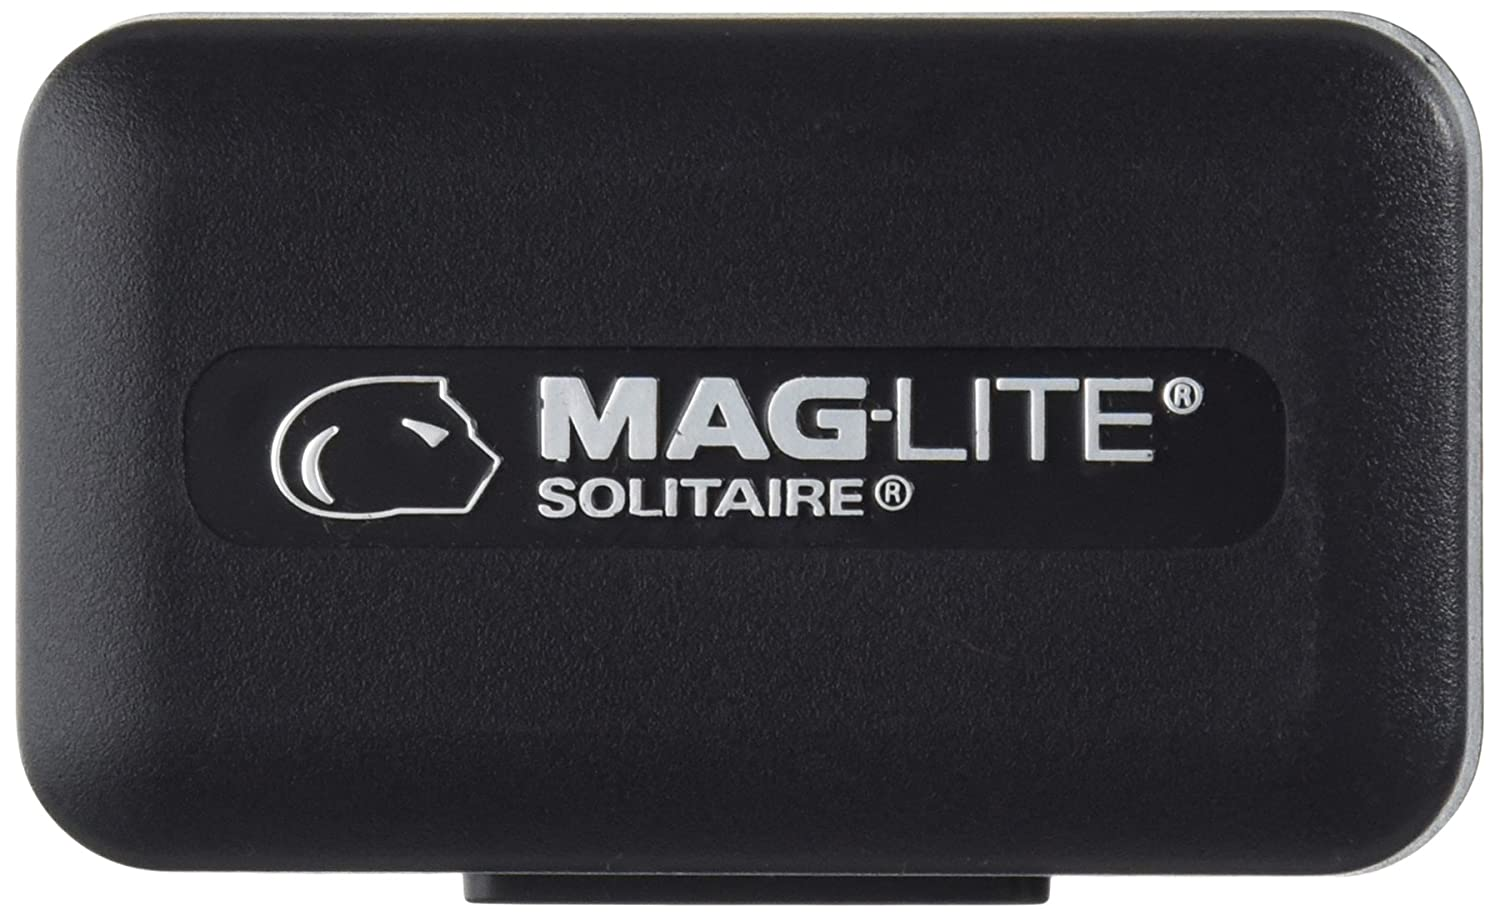 MagLite K3A092M Solitaire Flashlight Gray Mag-Lite